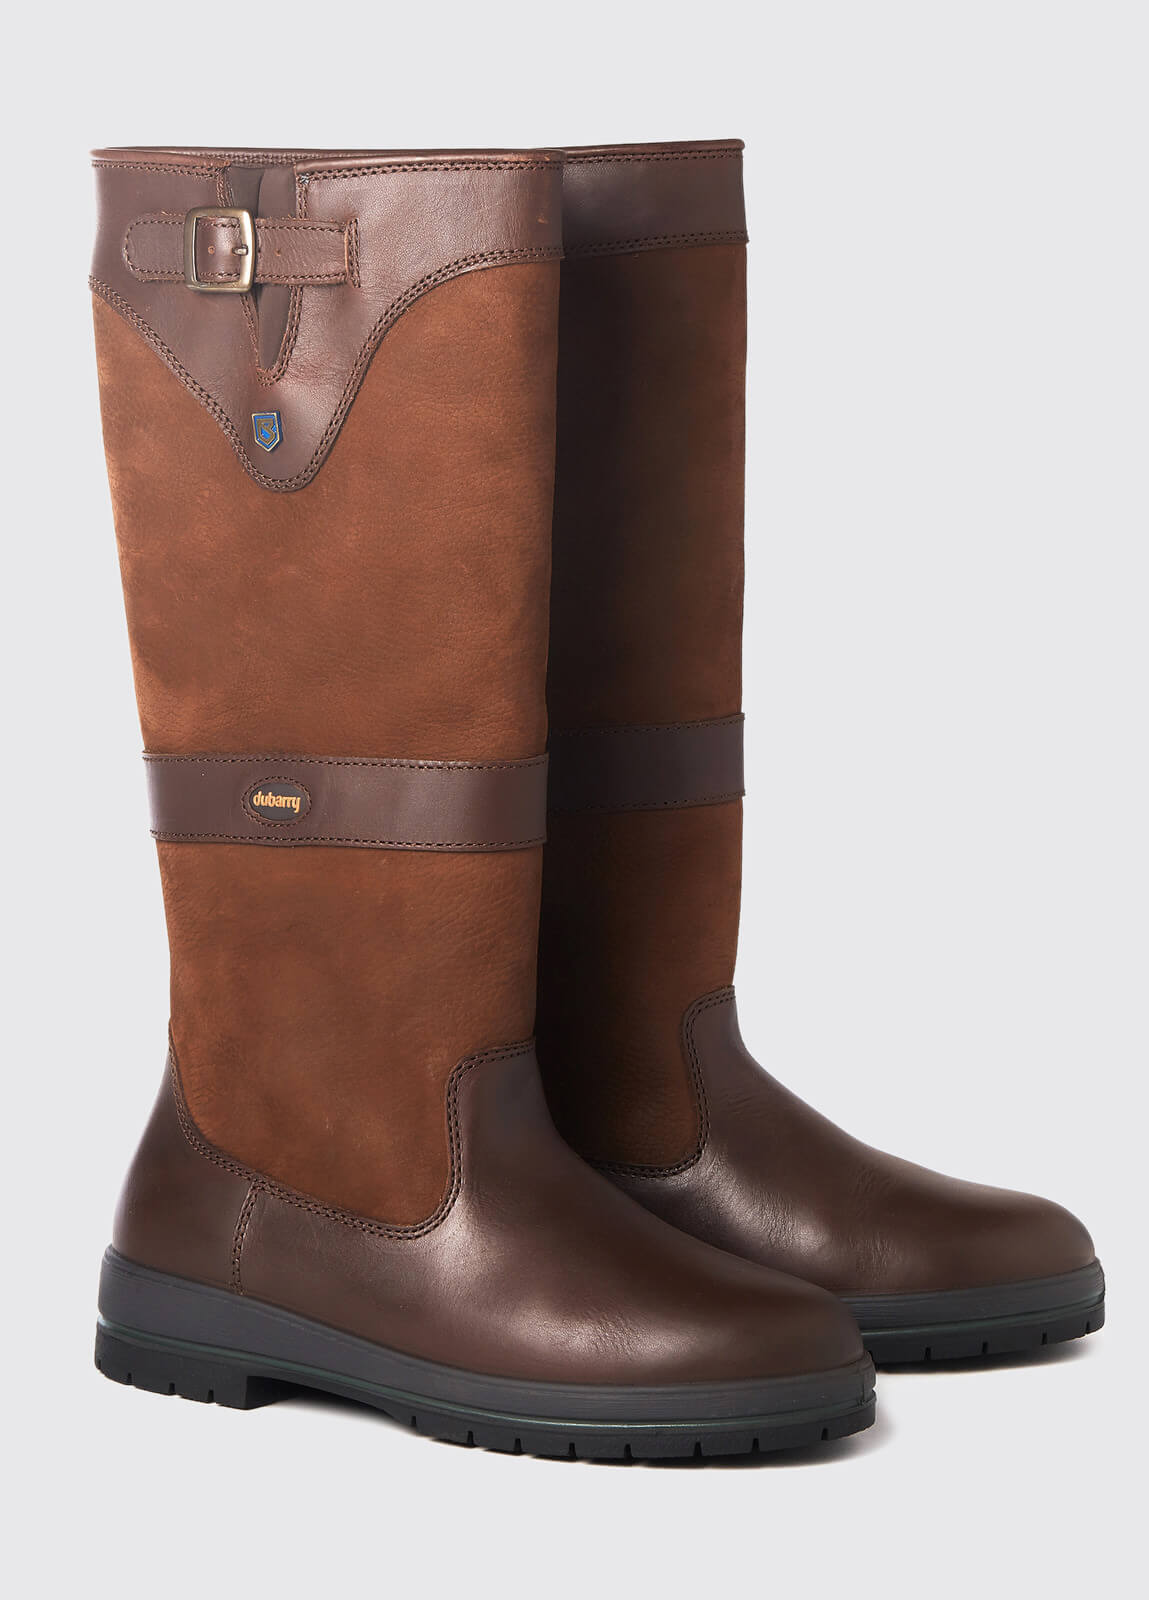 Tipperary Country Boot - Walnut